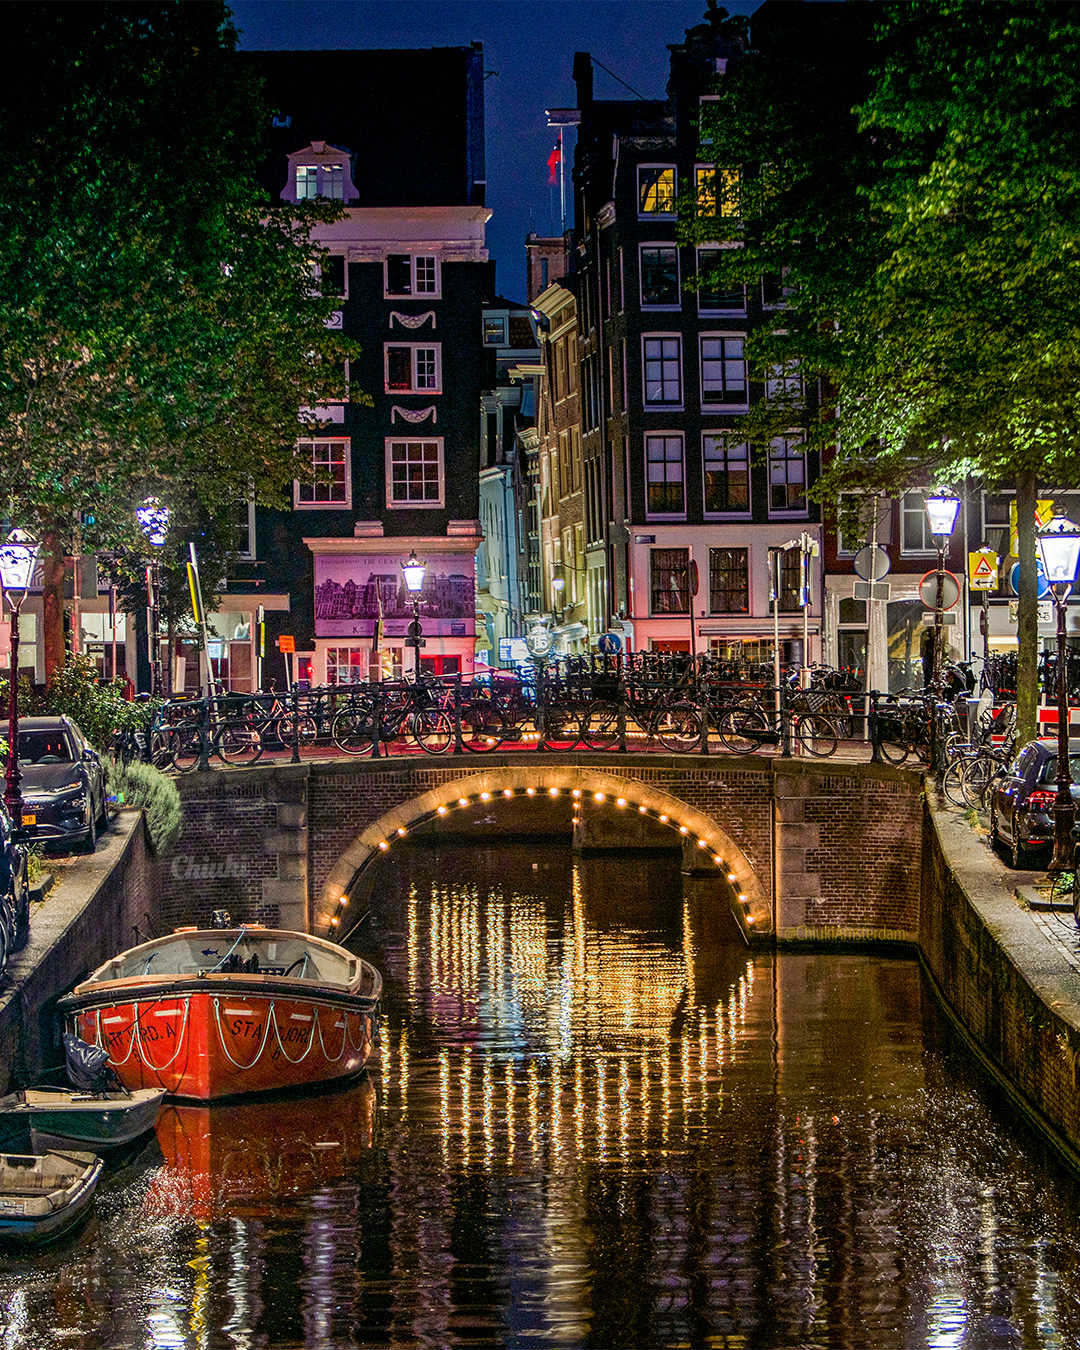 City Guide to Amsterdam